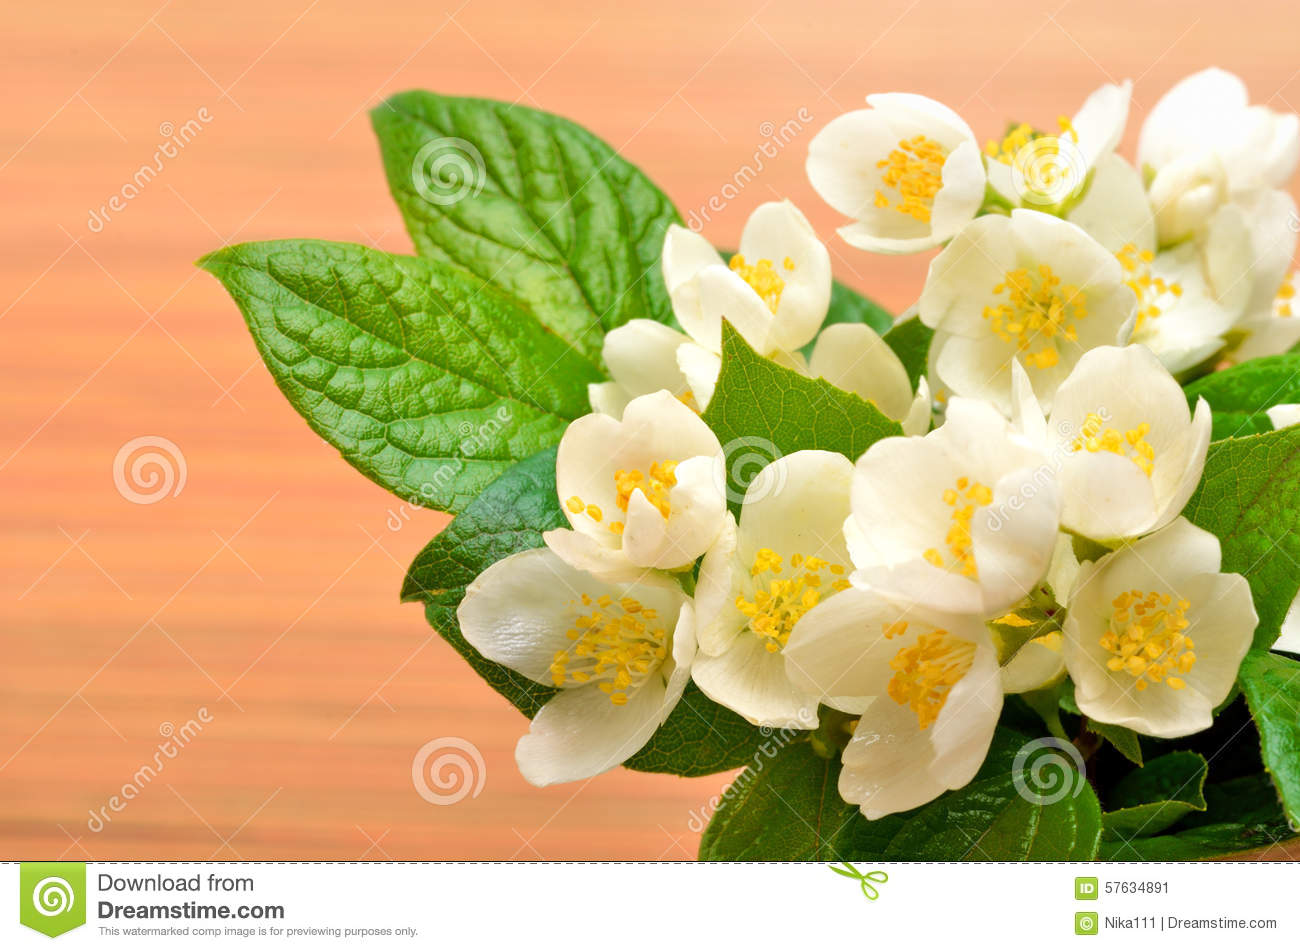 Jasmine flower bouquet on wood stock image image of flower jasmine flower bouquet on wood izmirmasajfo Image collections